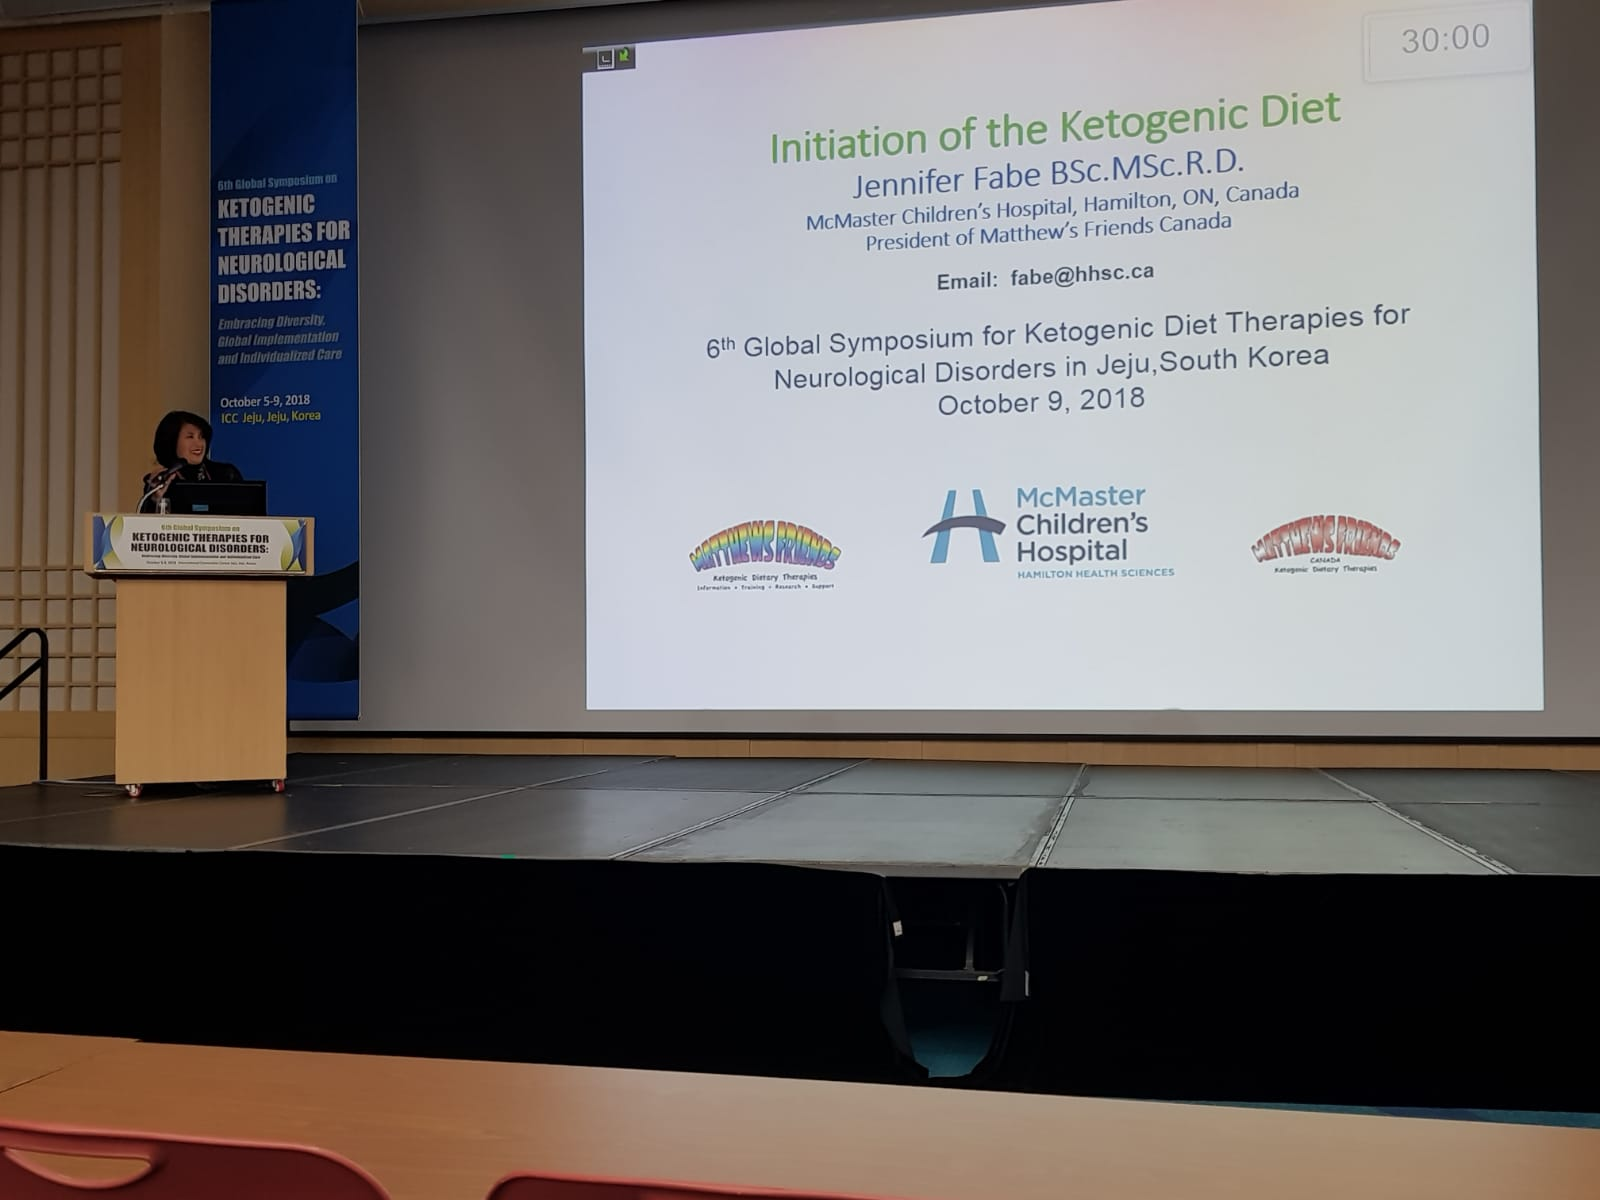 ketogenic diet conference jeju south korea